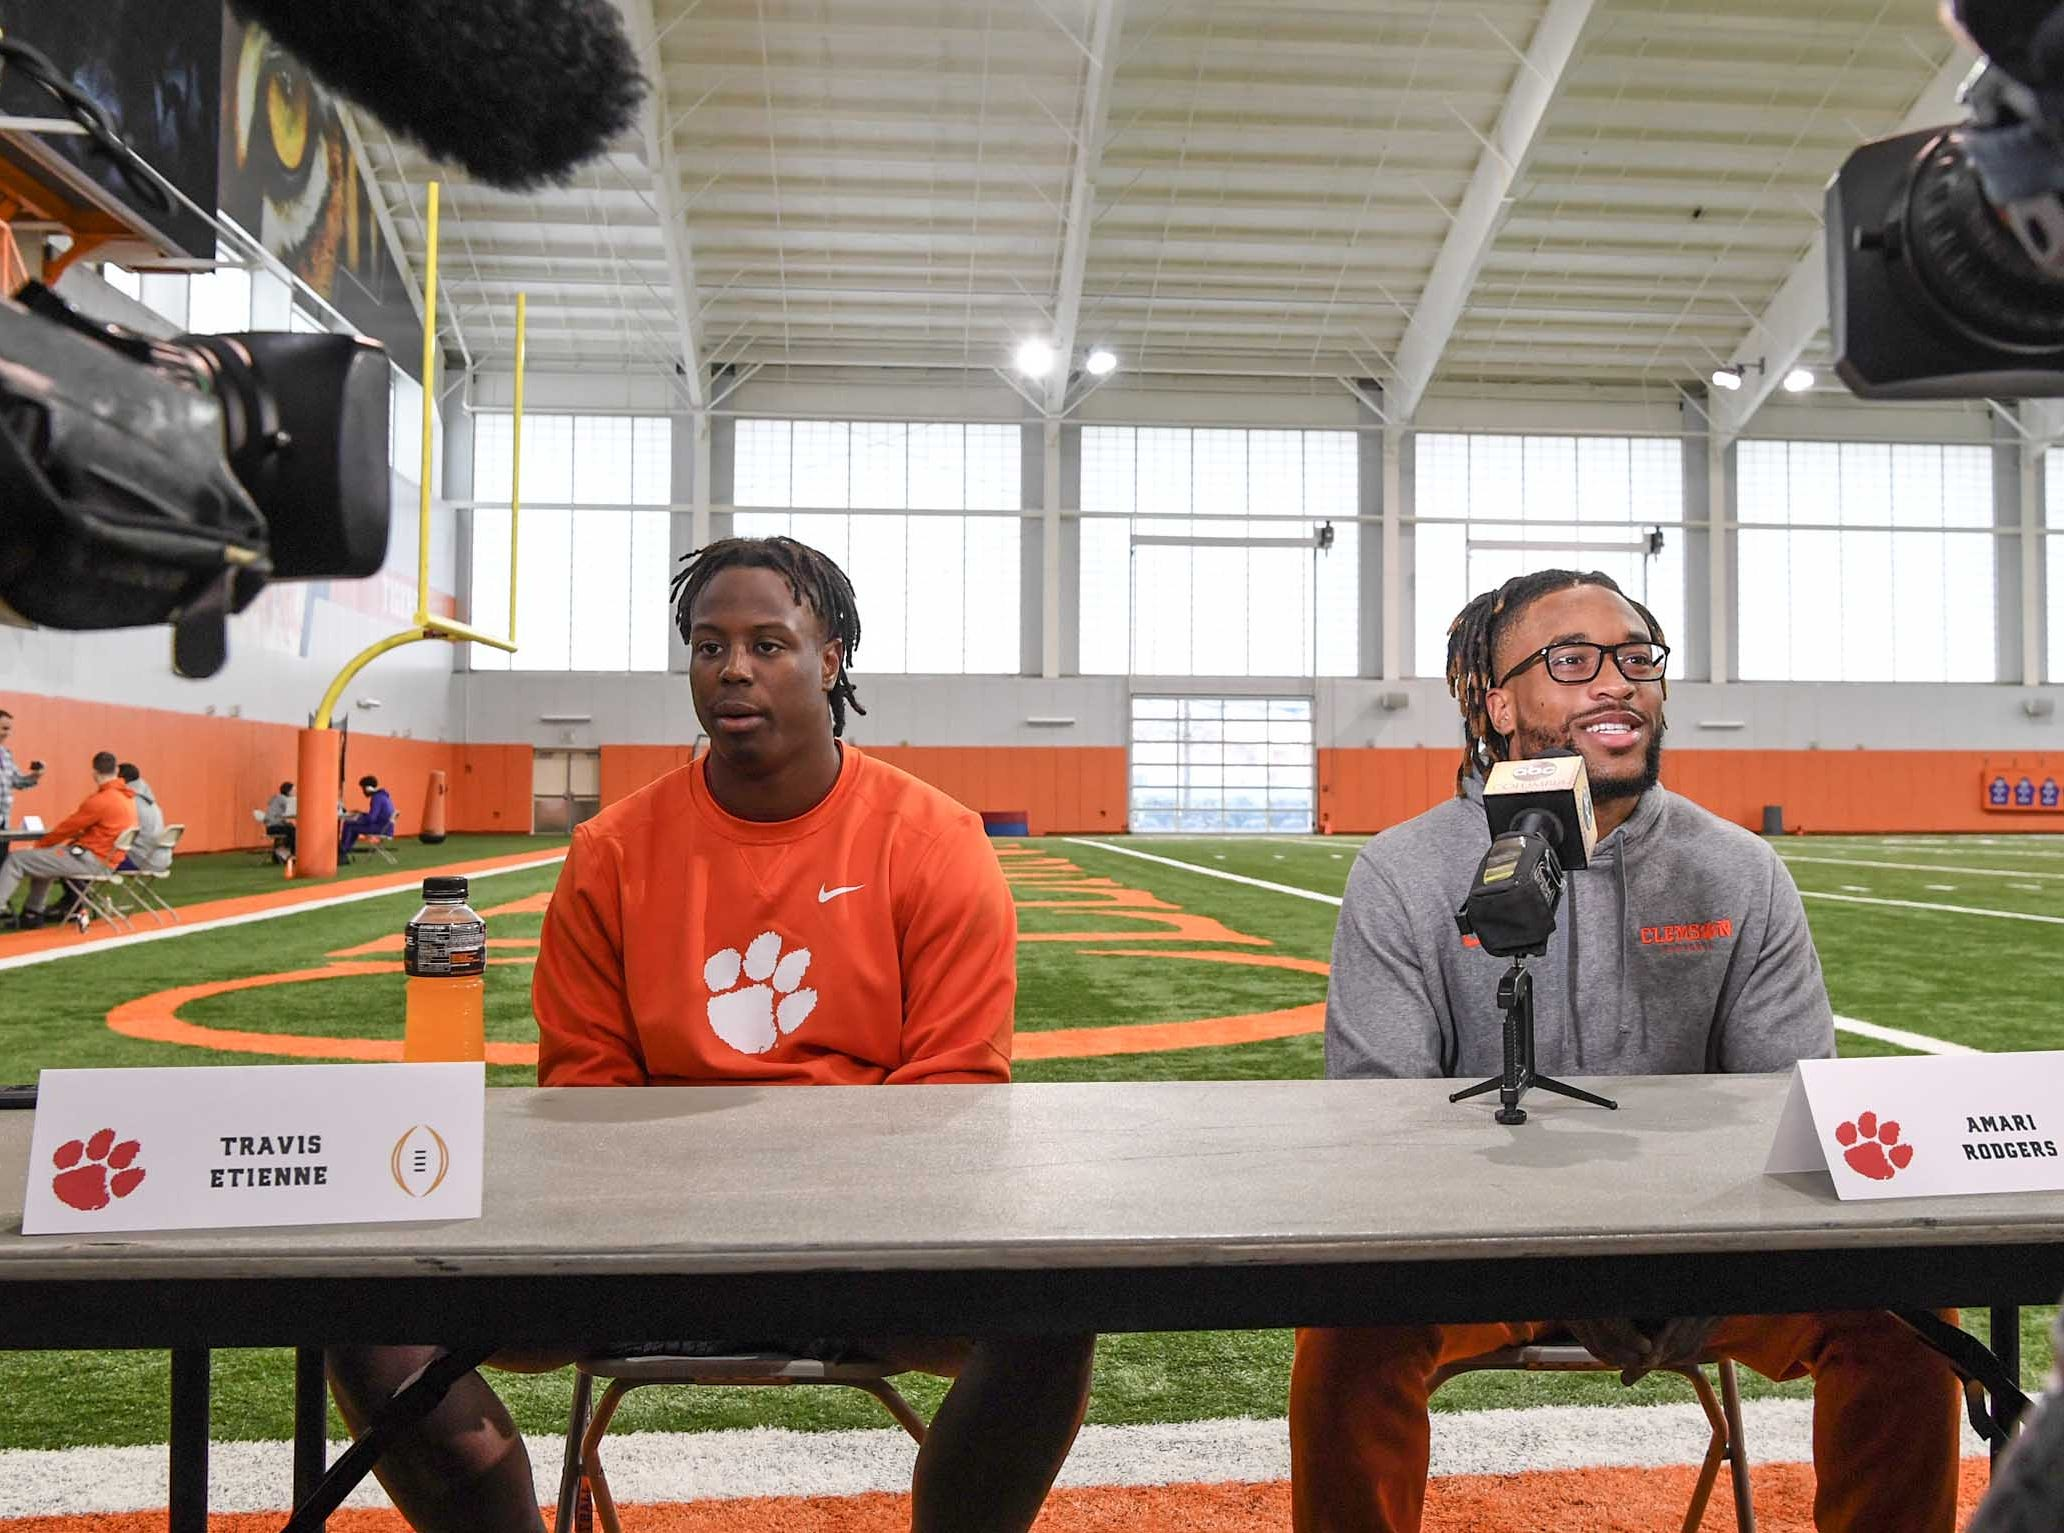 Clemson running back Travis Etienne, left, and wide receiver Amari Rodgers, right, talk during media day in the Poe Indoor Facility in Clemson Wednesday, January 2, 2019.